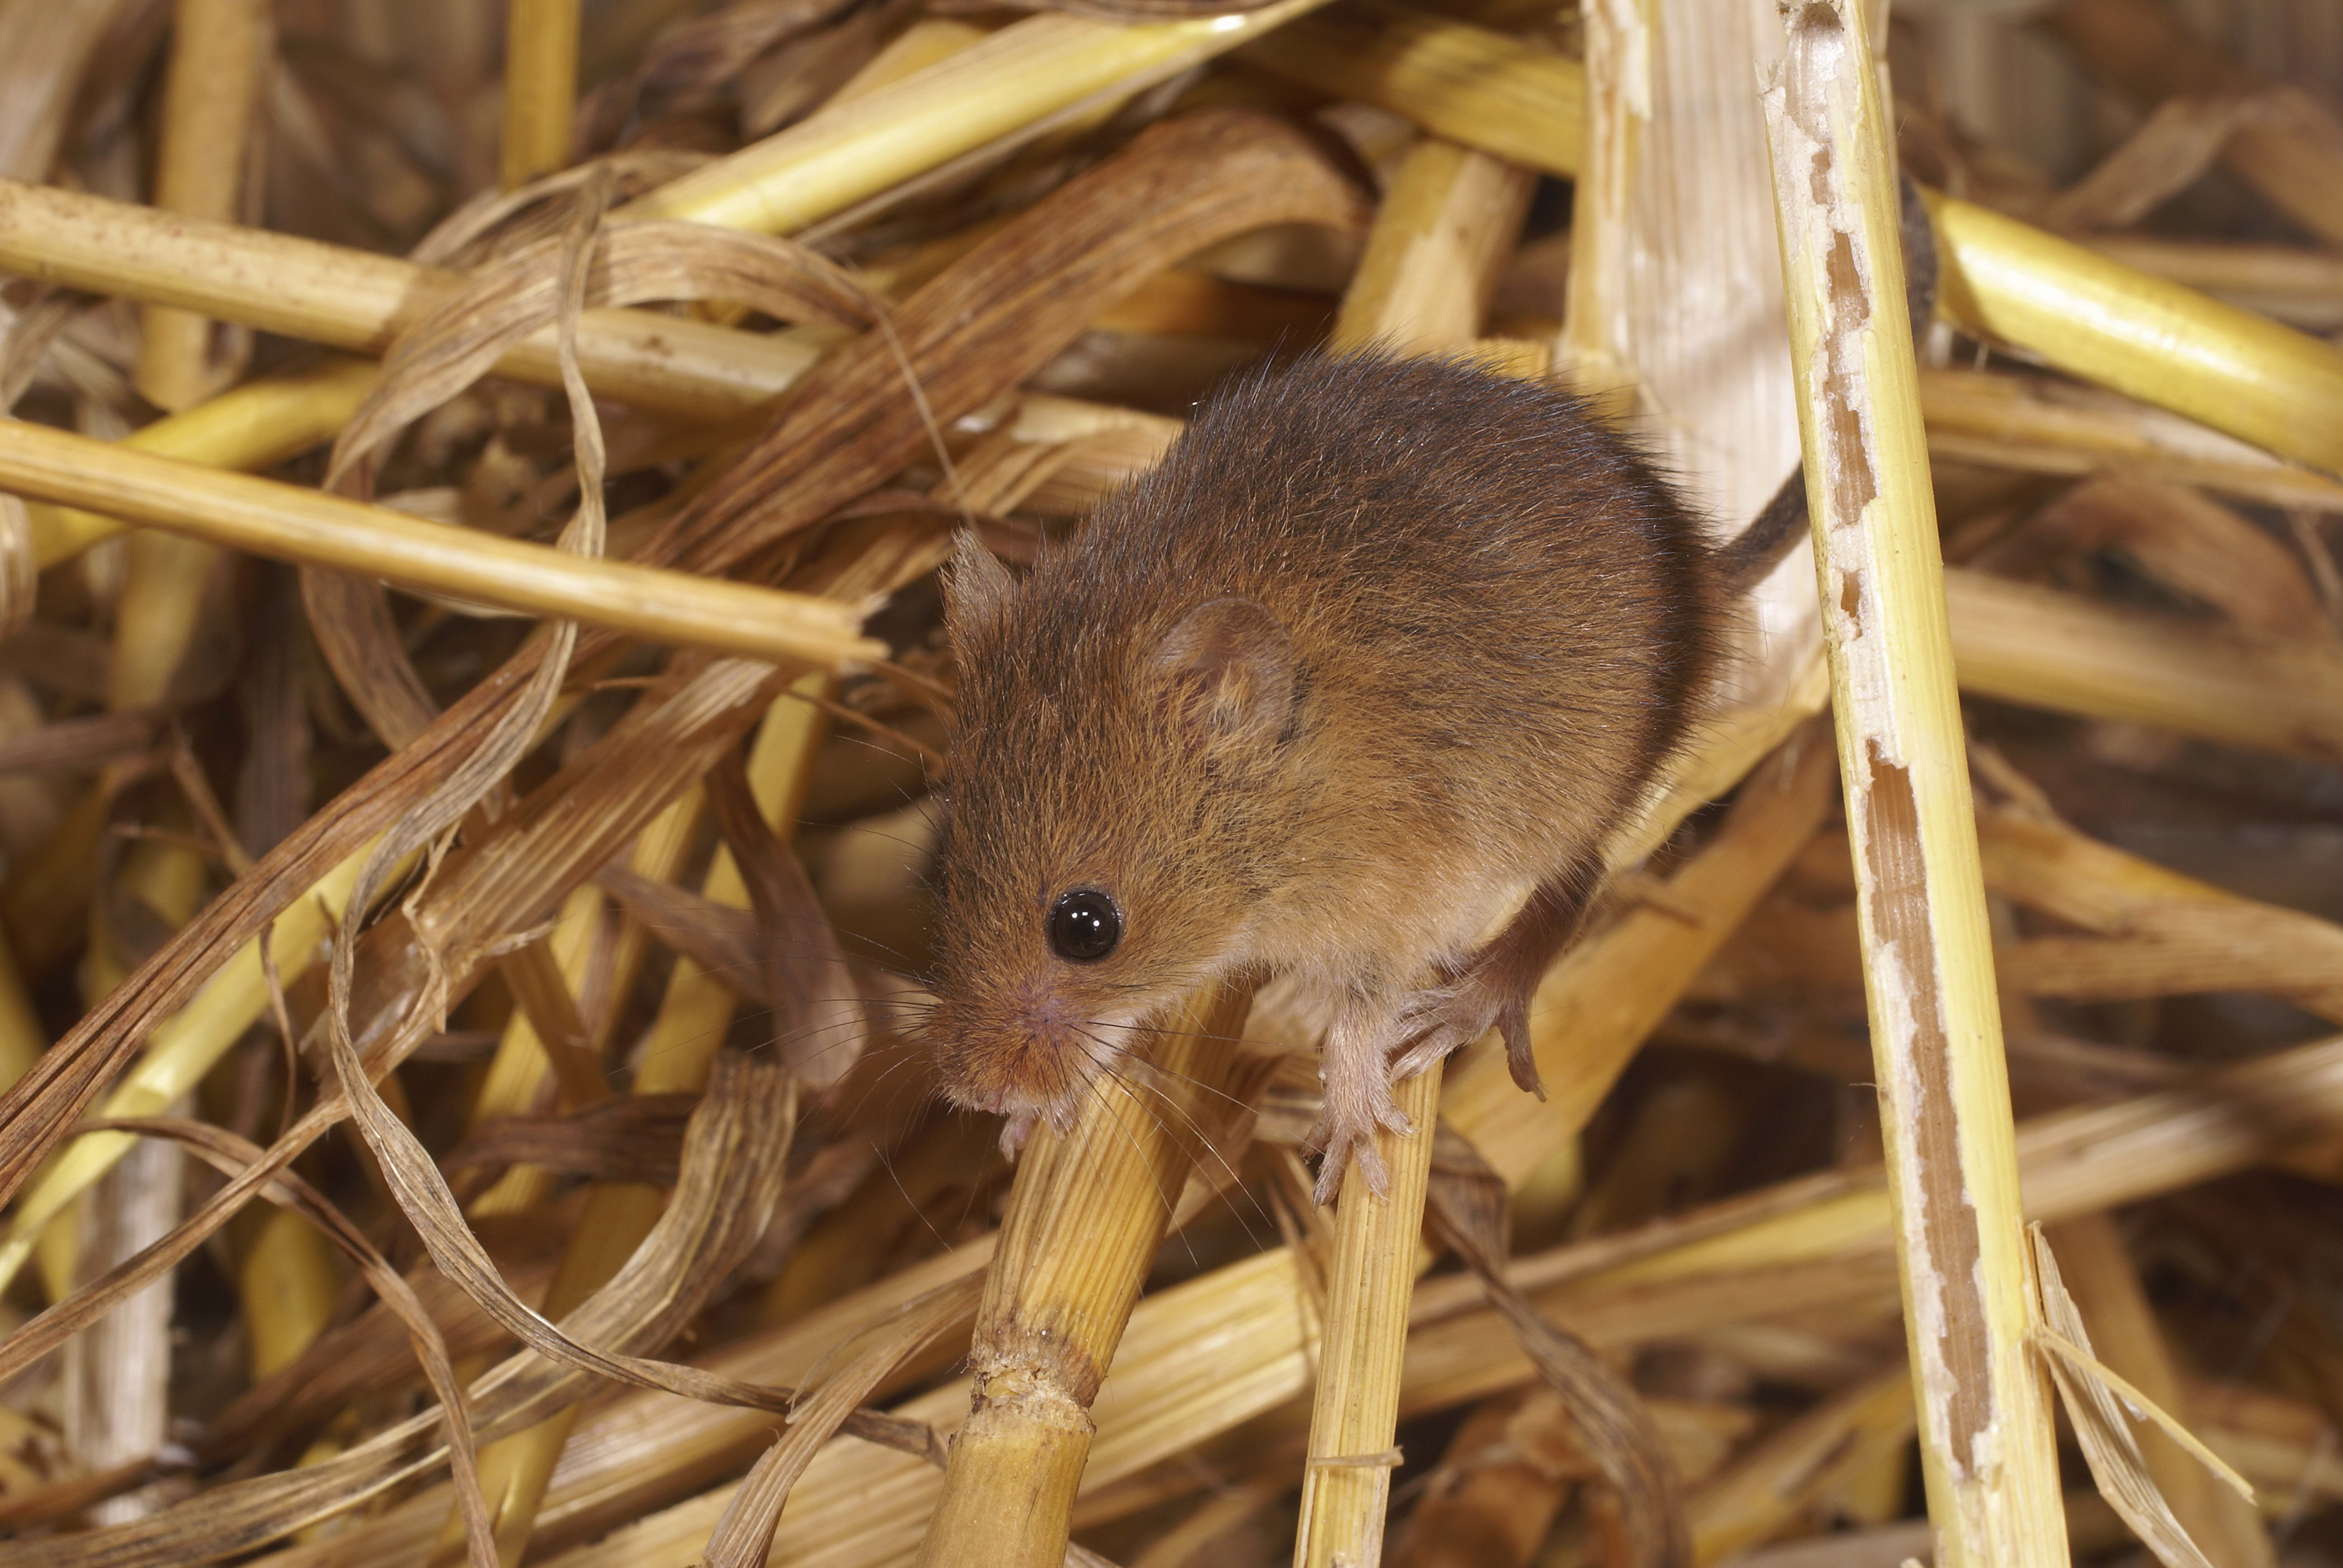 156311 download wallpaper Animals, Mouse, Mammal, Rodent screensavers and pictures for free